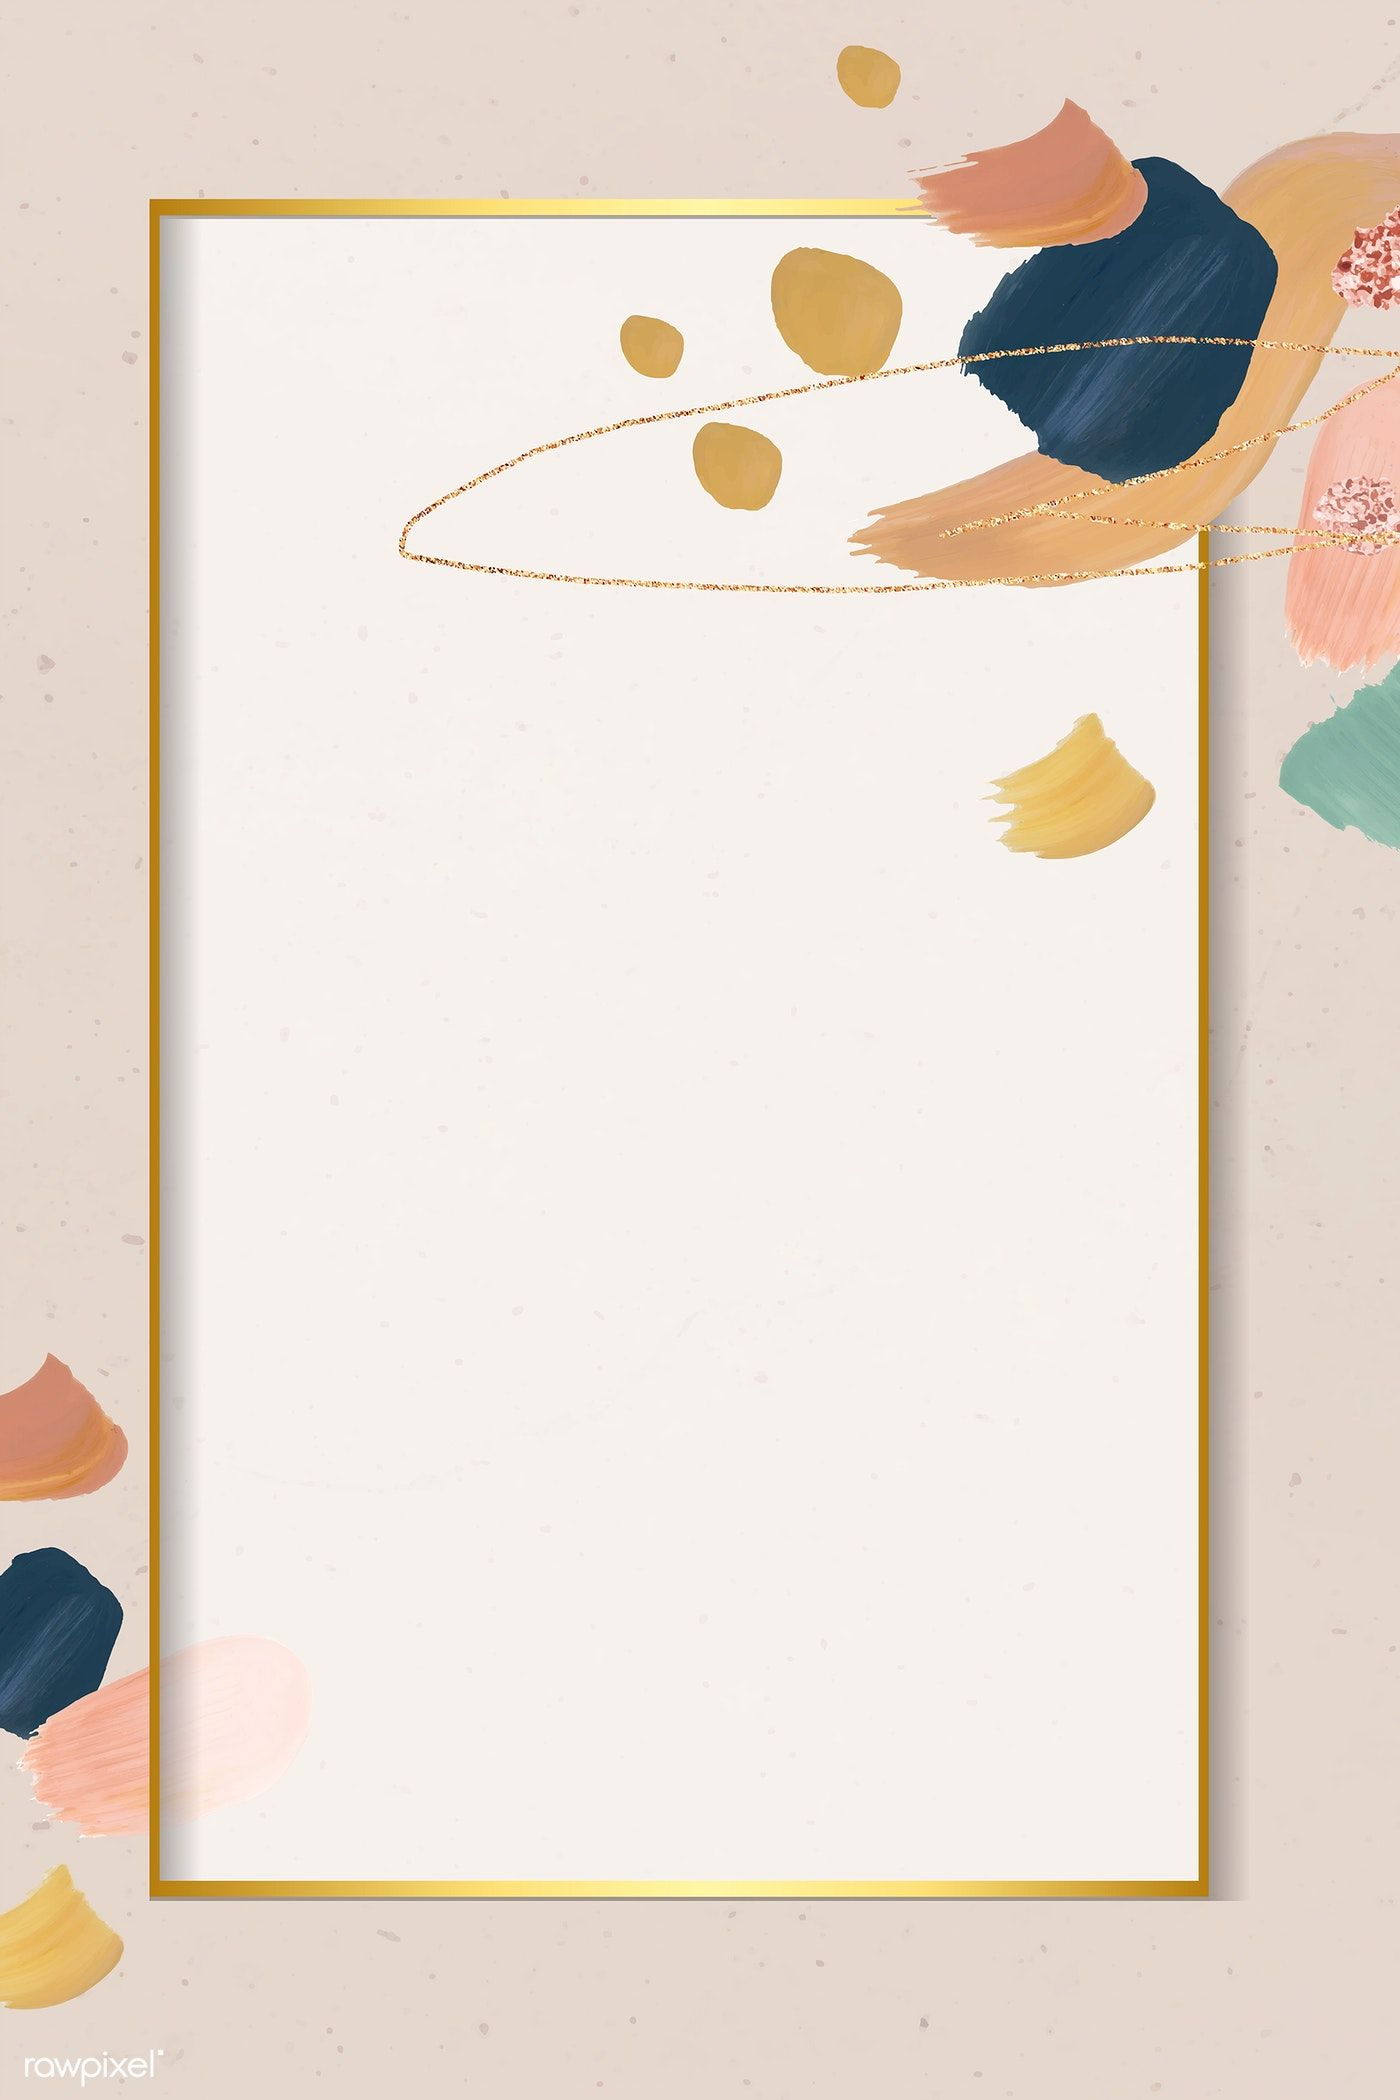 Download Premium Vector Of Golden Rectangle On An Abstract Element Frame Abstract Graphic Design Background Templates Illustration